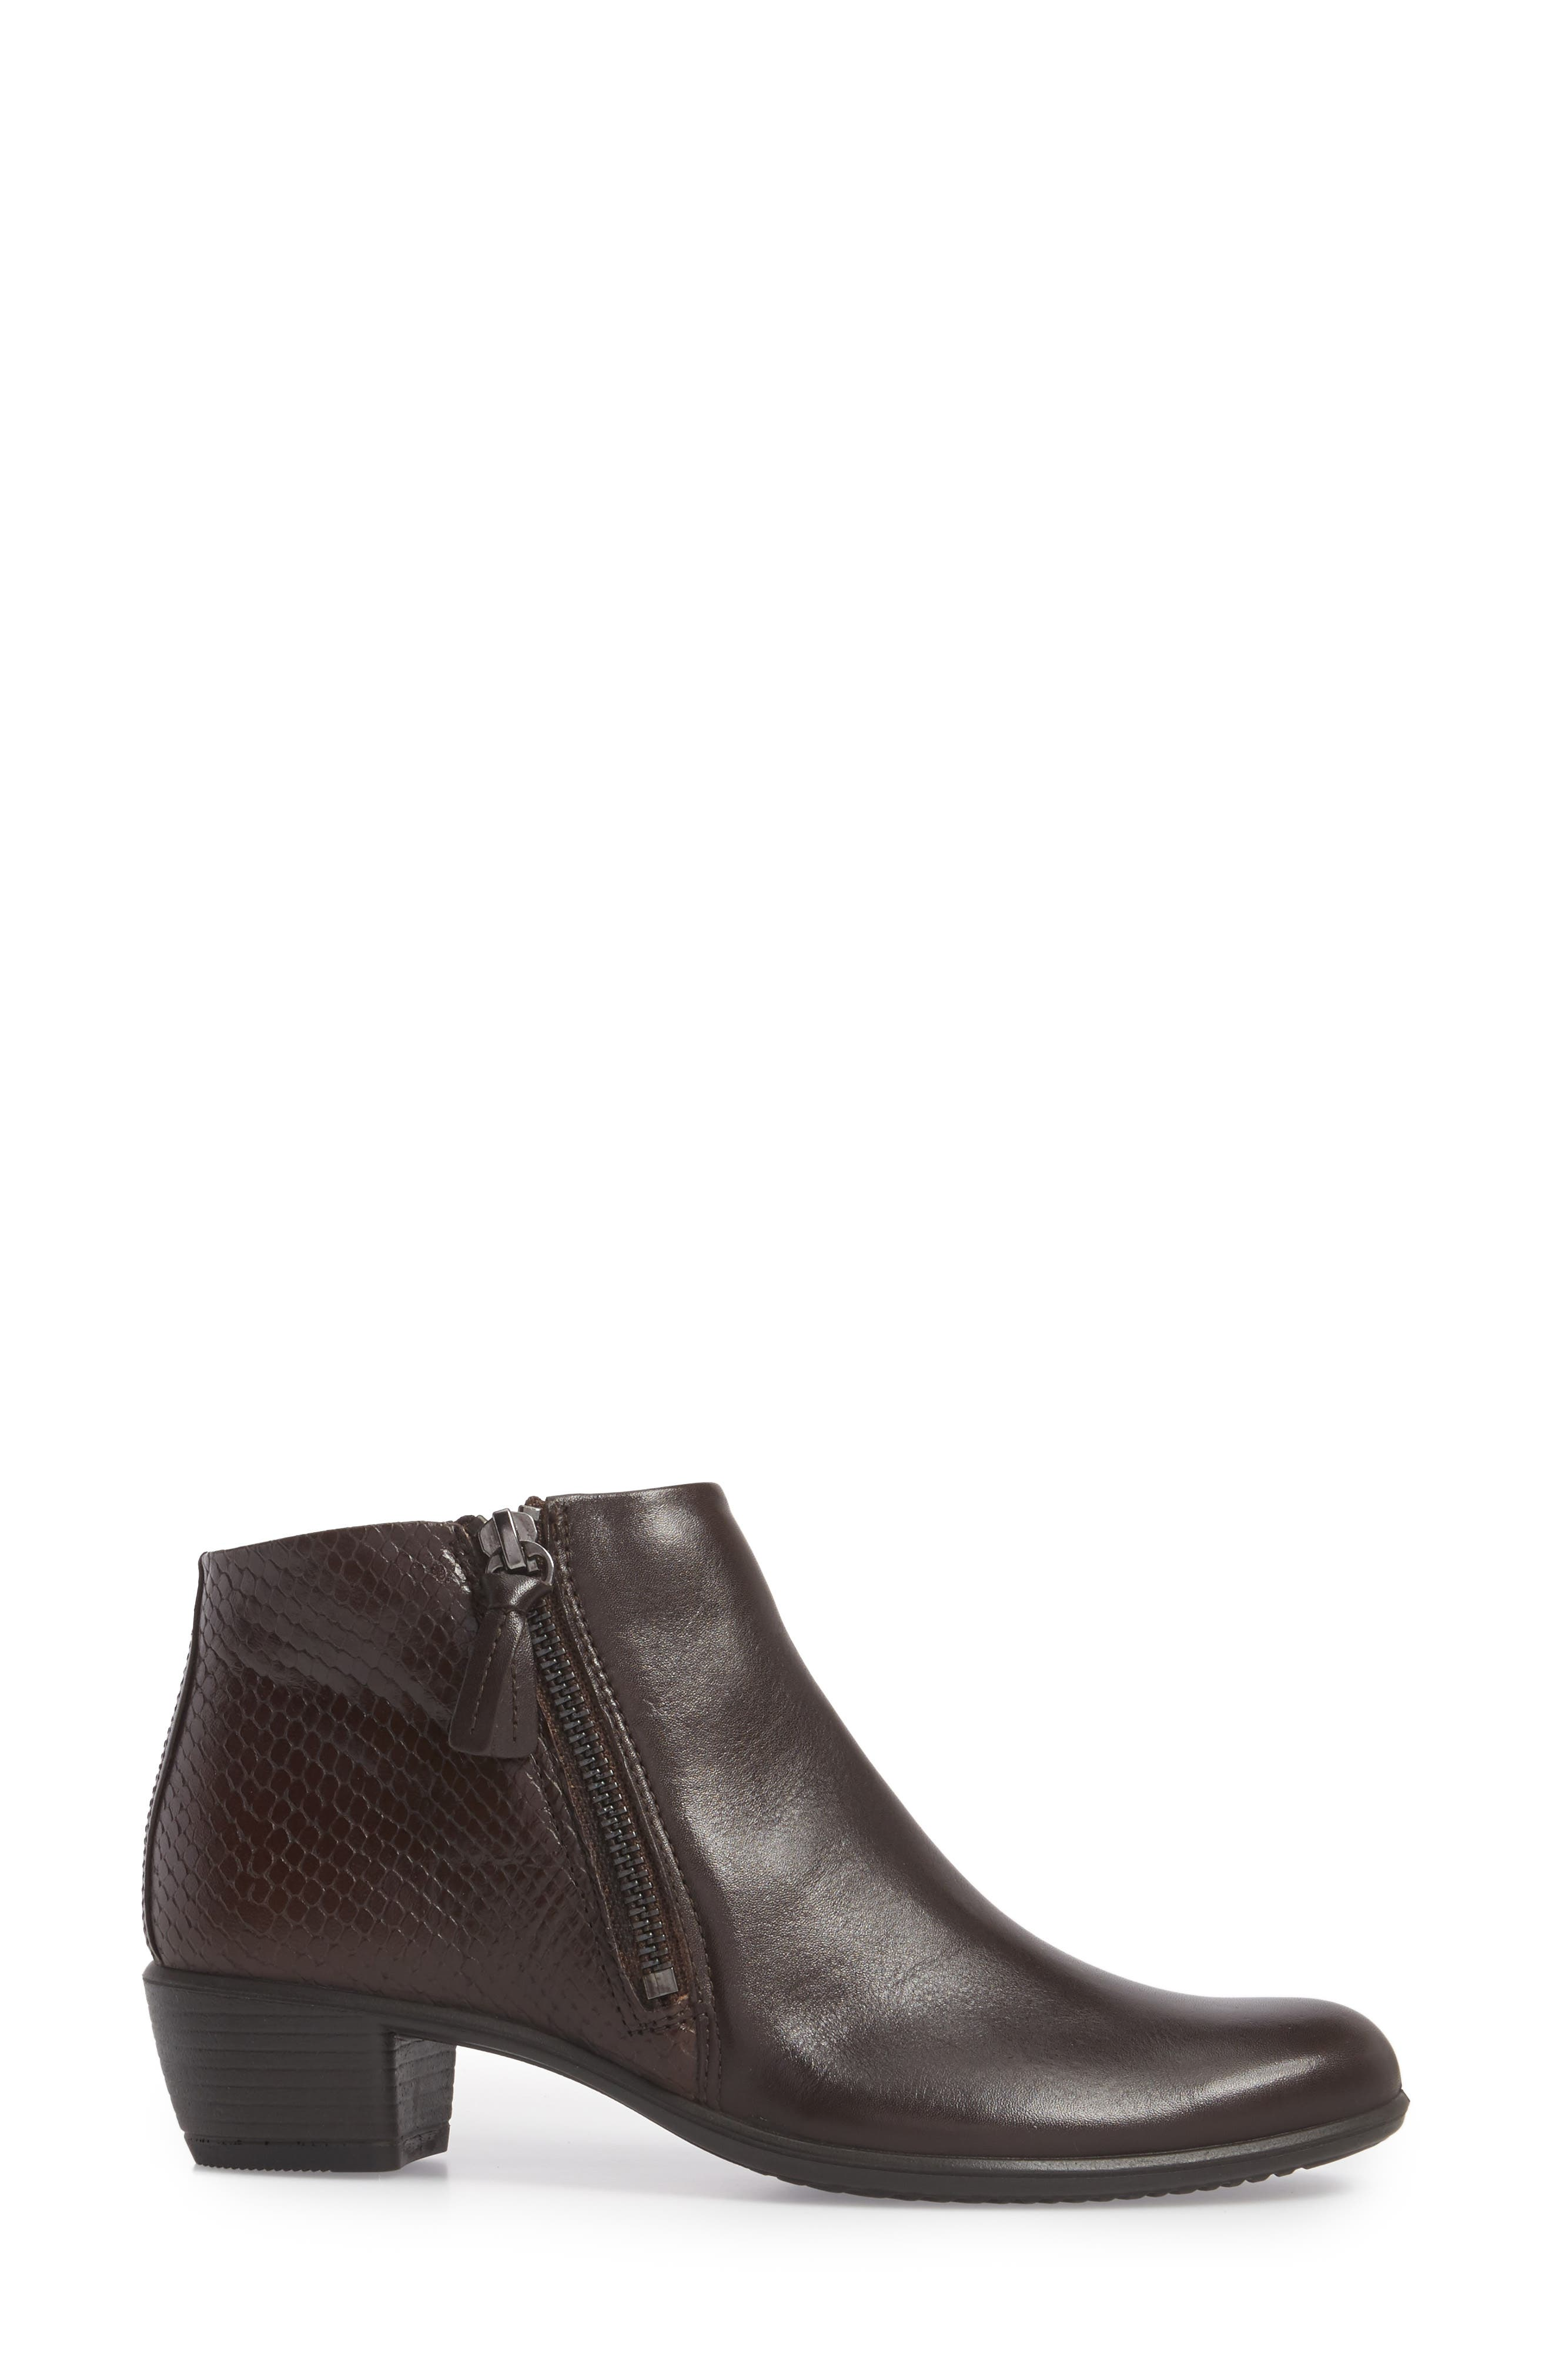 'Touch' Zip Bootie,                             Alternate thumbnail 3, color,                             Coffee Leather